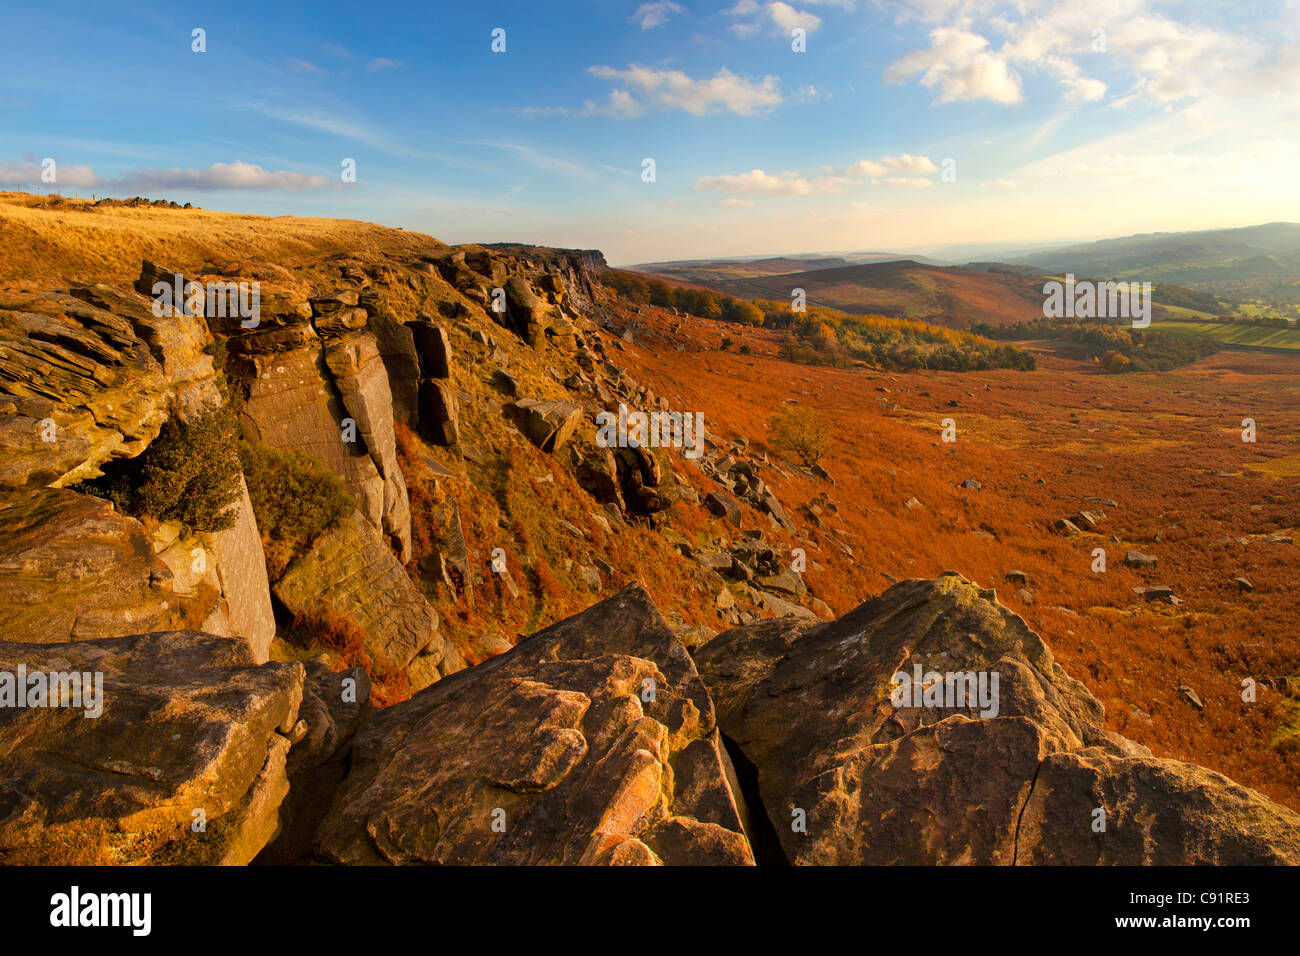 Stanage Edge escarpment and views of countryside in autumn, near Hathersage, Derbyshire, Peak district, England - Stock Image